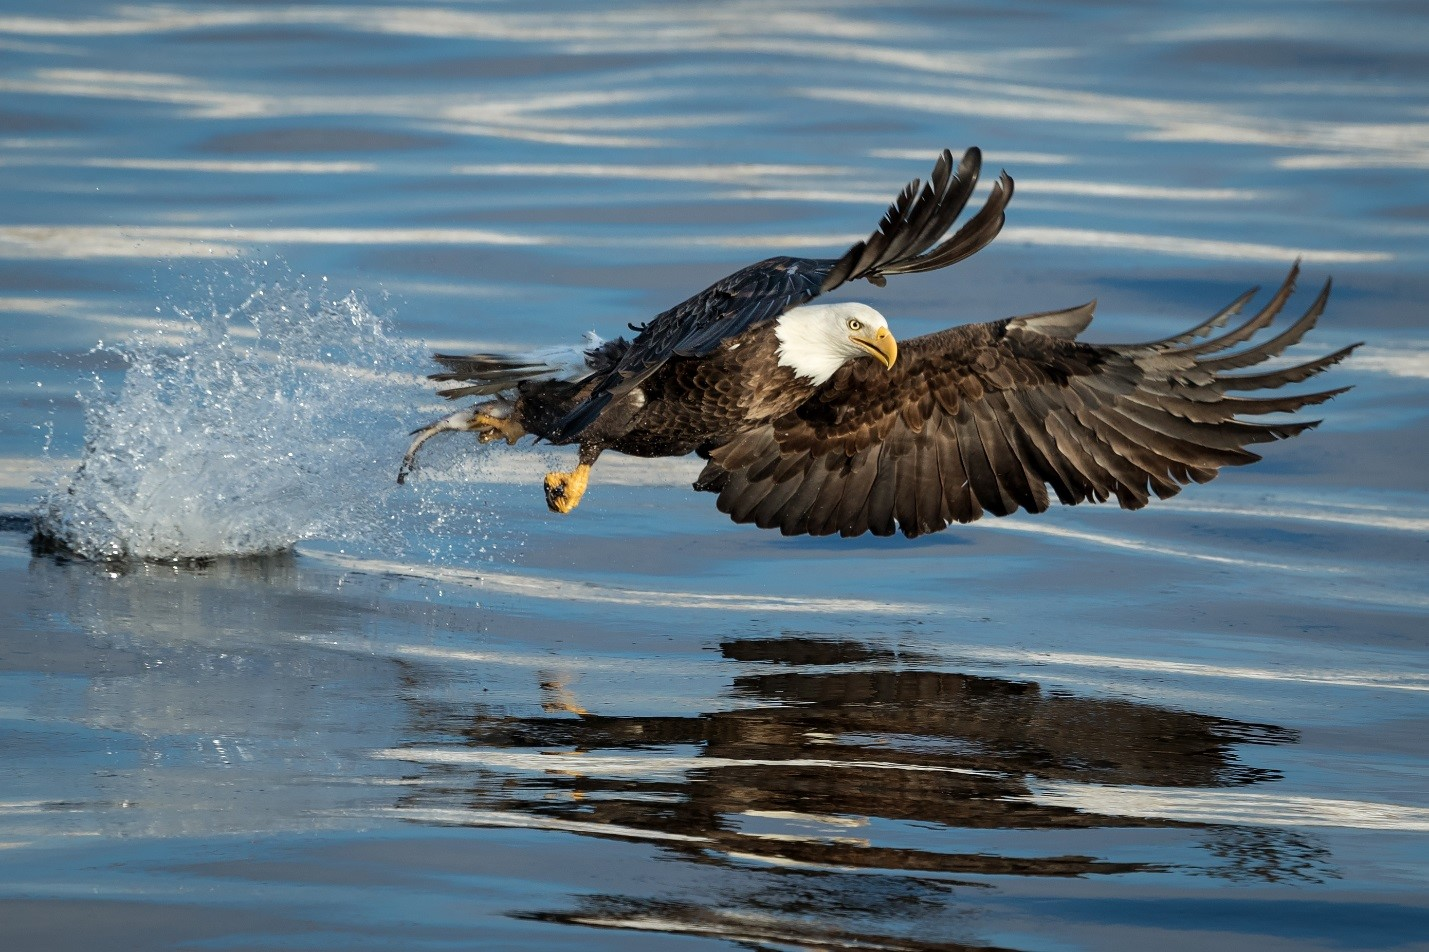 A bald eagle takes off from the water after catching a fish